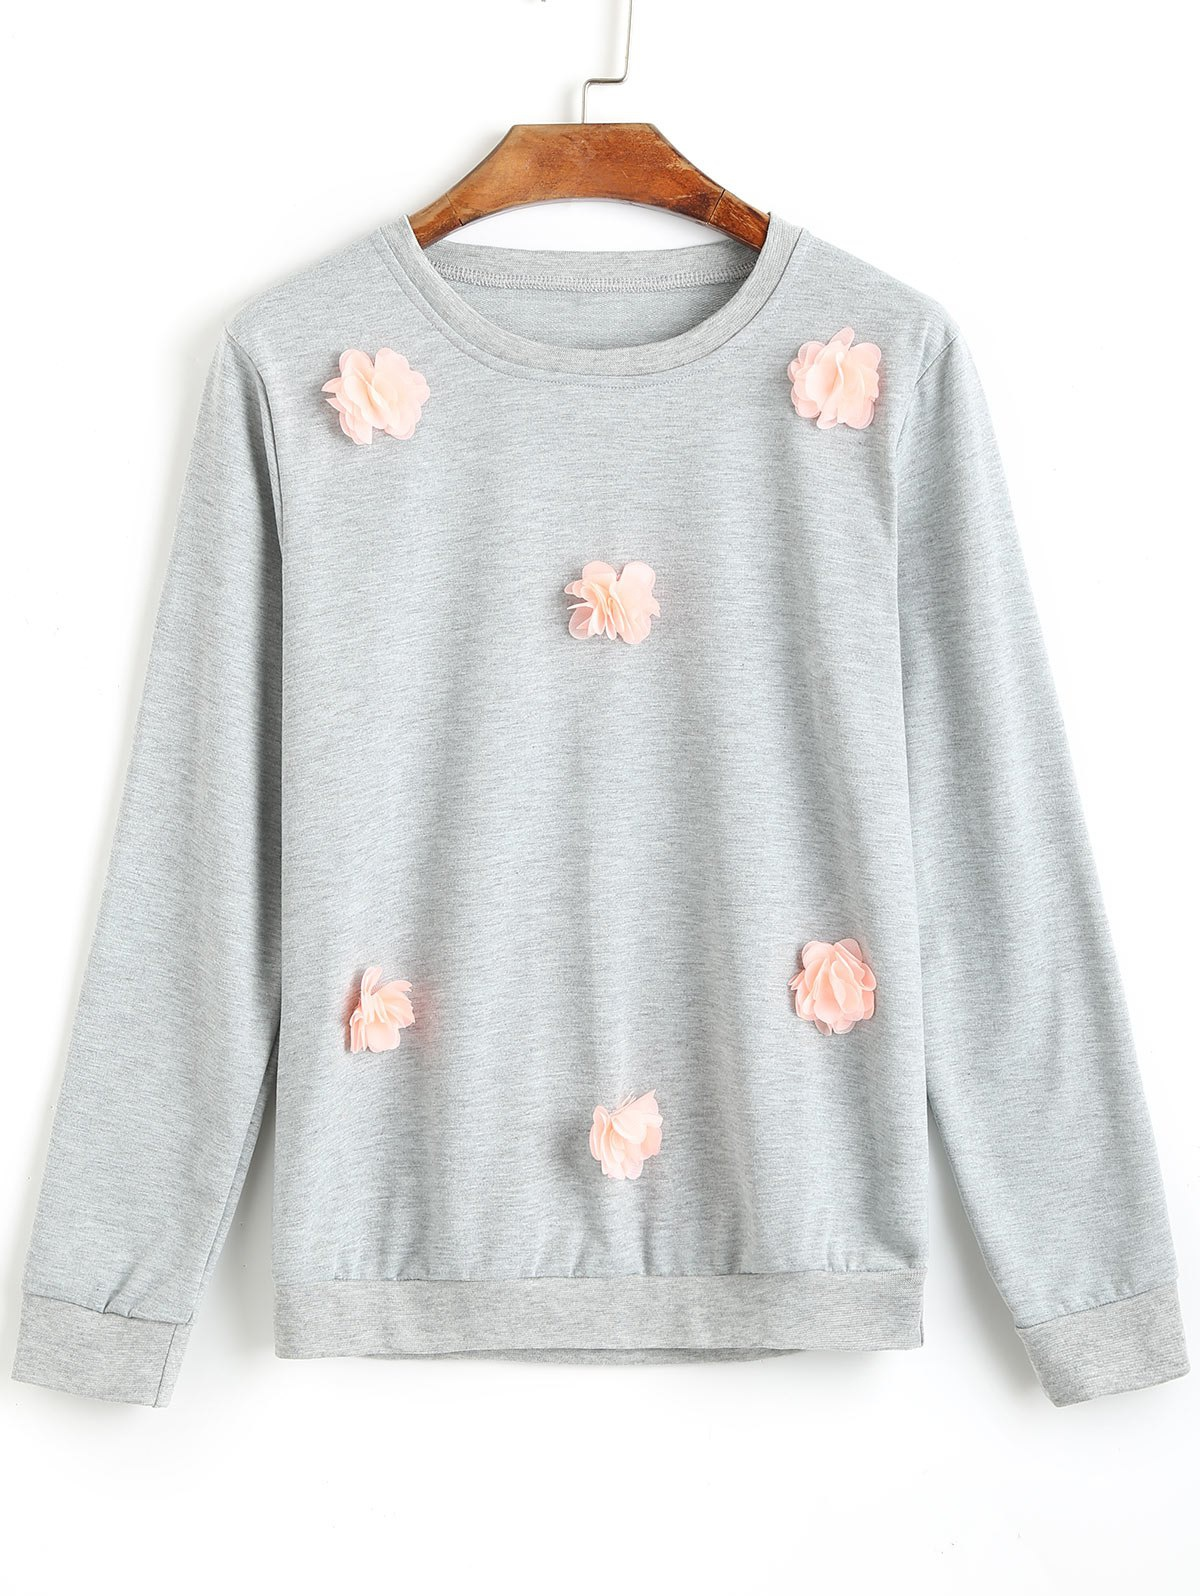 Crew Neck Stereo Floral Sweatshirt